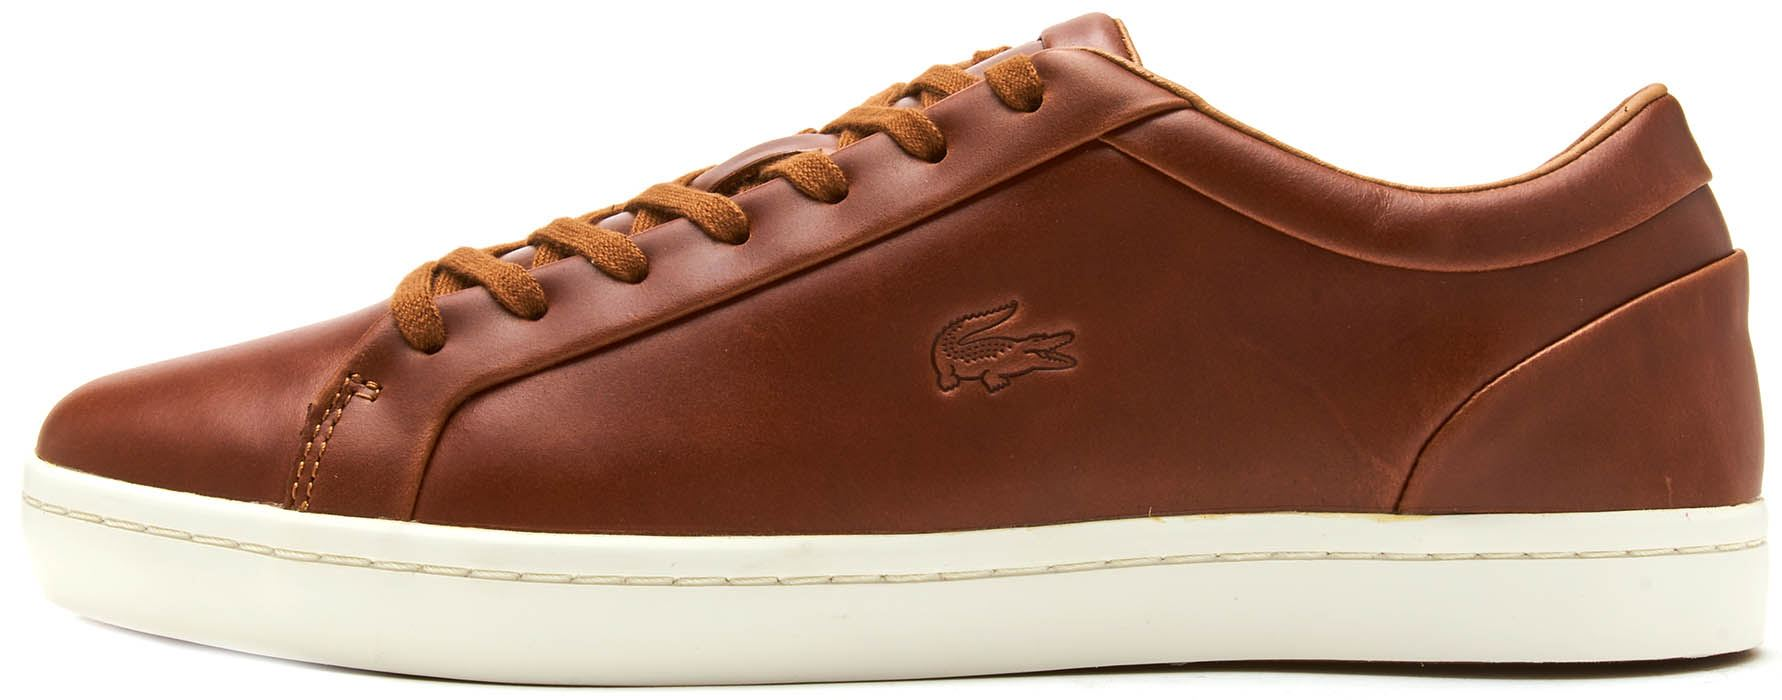 e01d9dba0 Lacoste Straightset 317 1 CAM Leather Trainers in Brown 734CAM0058 078.  Description An iconic silhouette